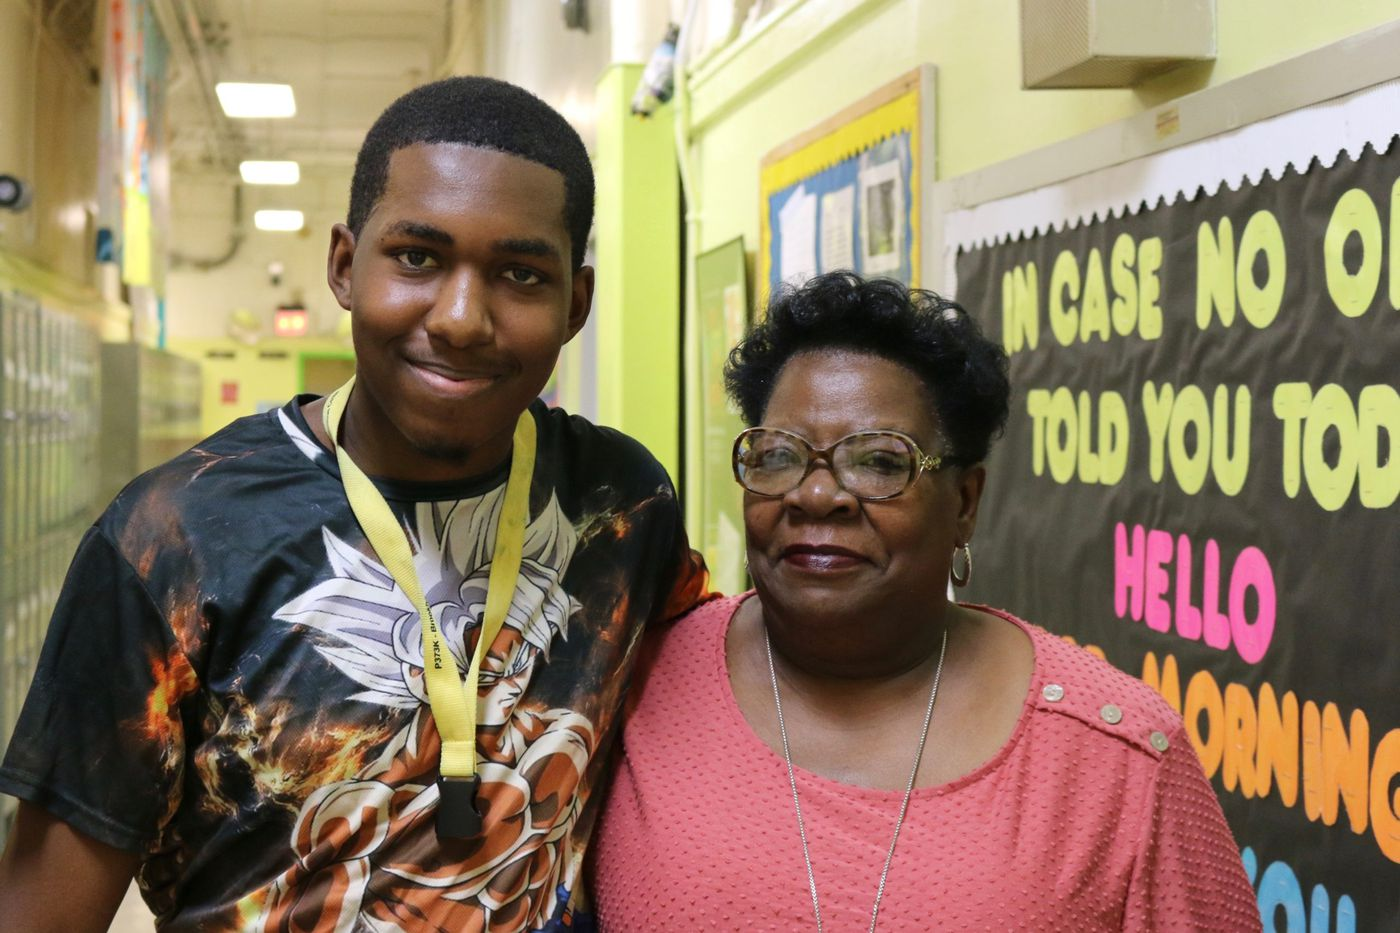 Student and parent smile for the camera